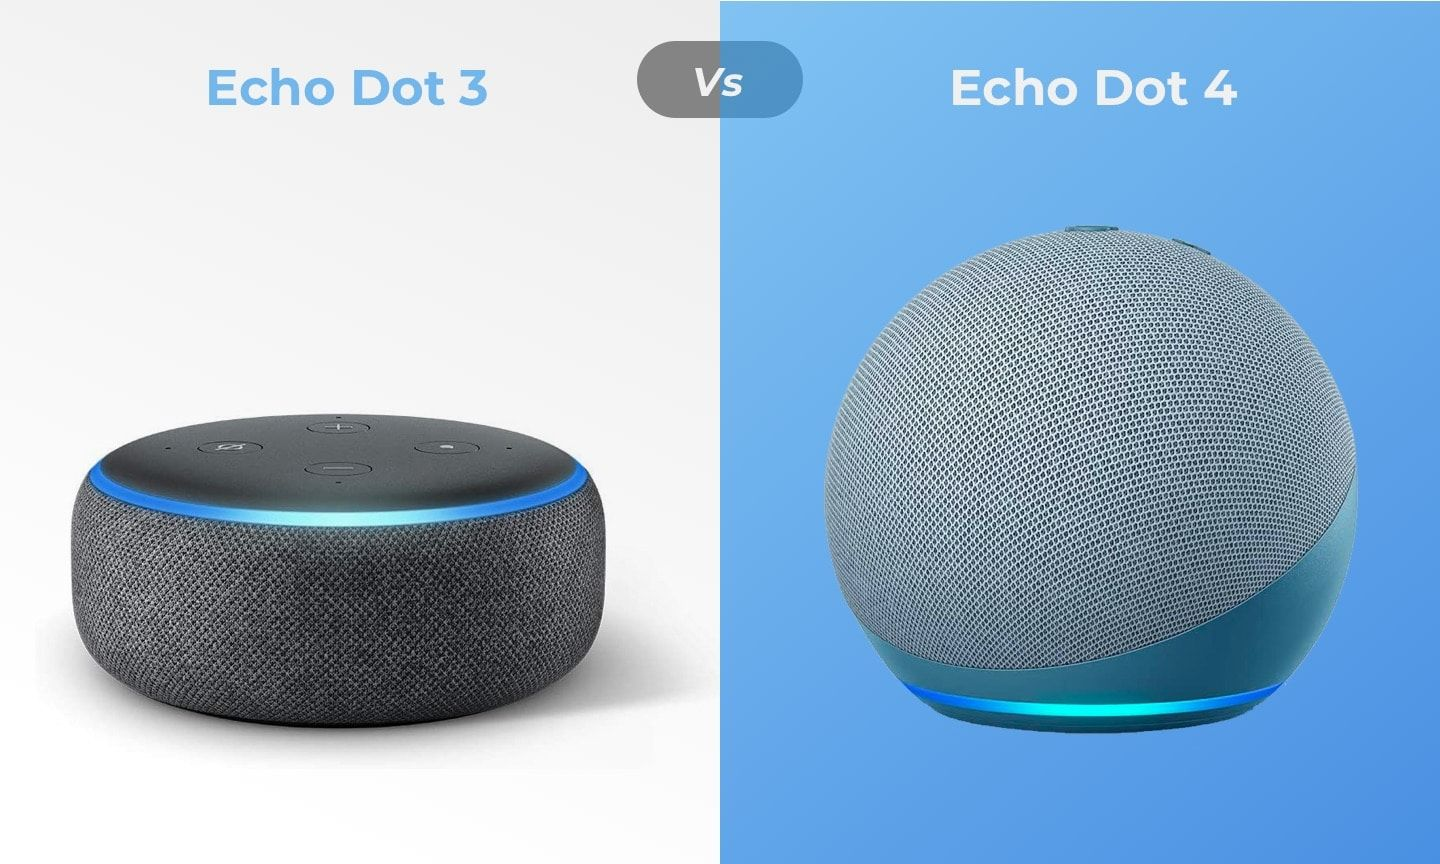 echo dot 4 vs 3